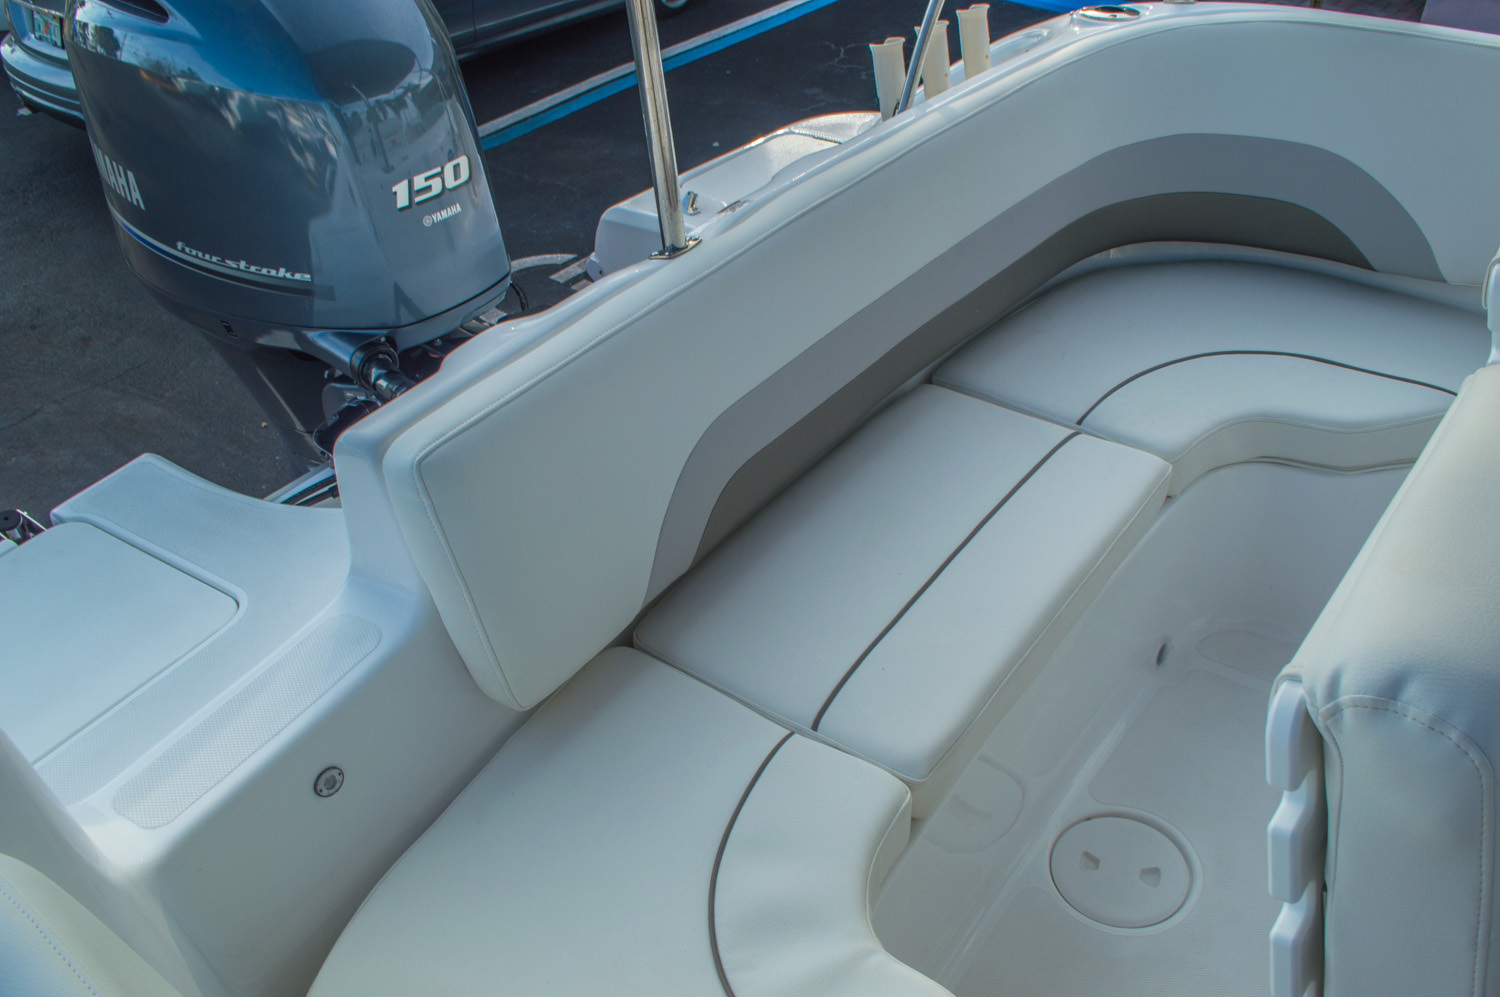 Thumbnail 14 for New 2016 Hurricane CC211 Center Consle boat for sale in West Palm Beach, FL